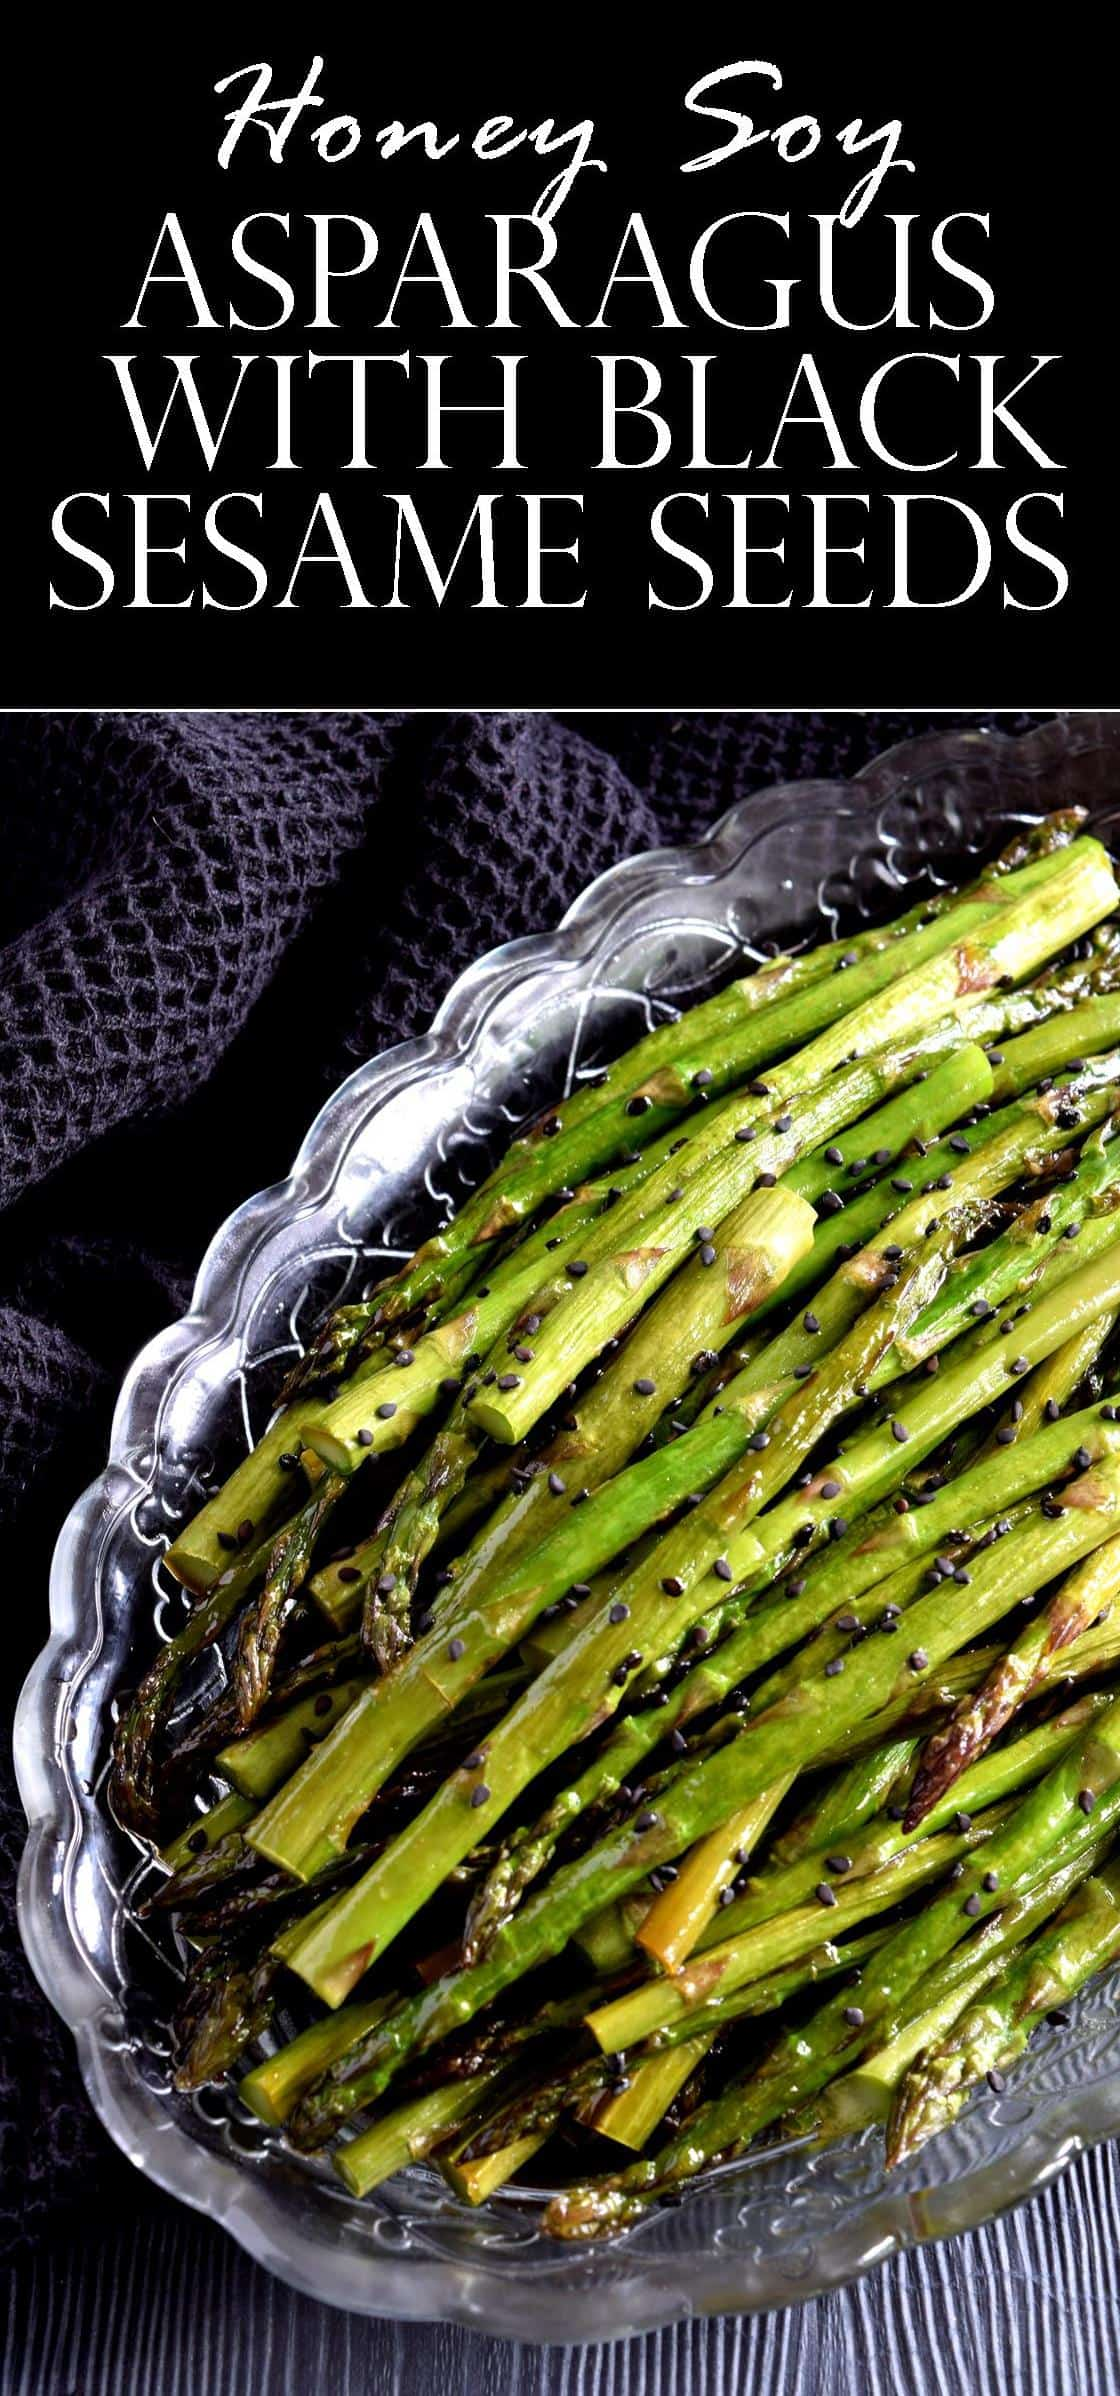 Maybe It's Just Me, But There's Just Something Really Appealing And Really  Pretty About Black Sesame Seeds Personally, I Think They Make These  Asparagus